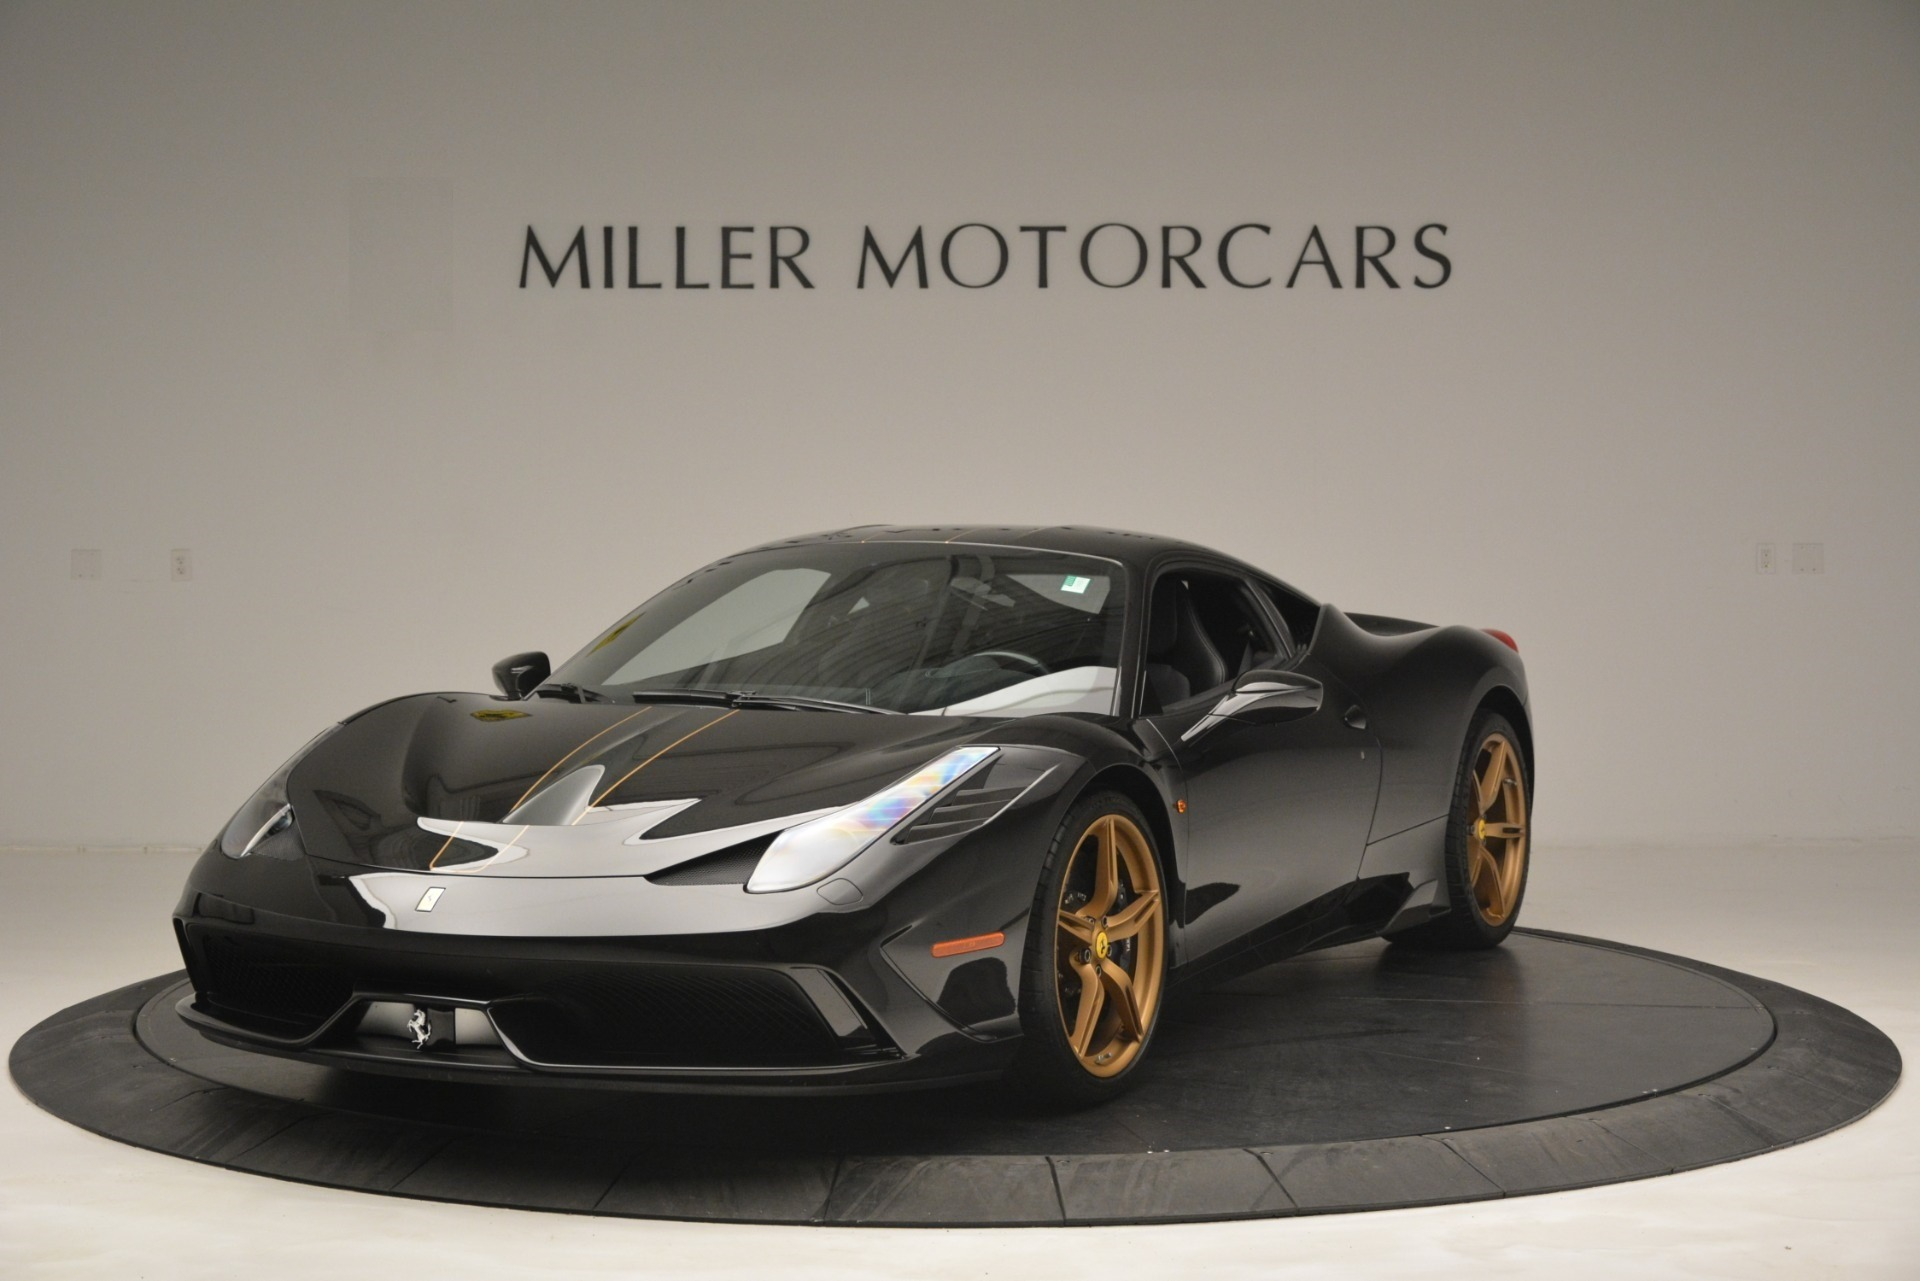 Used 2014 Ferrari 458 Speciale for sale Sold at Bentley Greenwich in Greenwich CT 06830 1